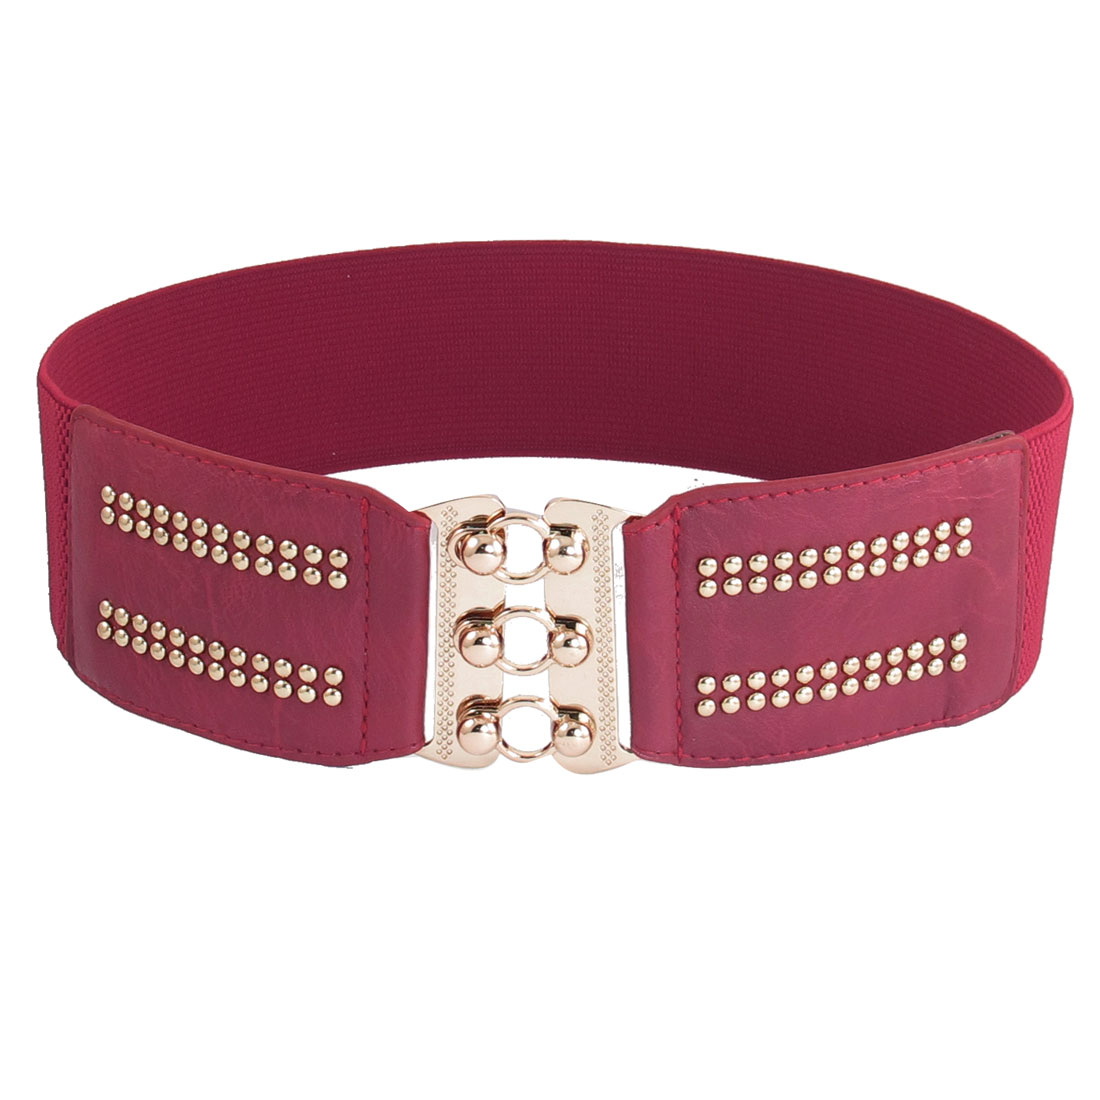 Red Metal Interlocking Buckle Stretchy Waistband Belt for Ladies